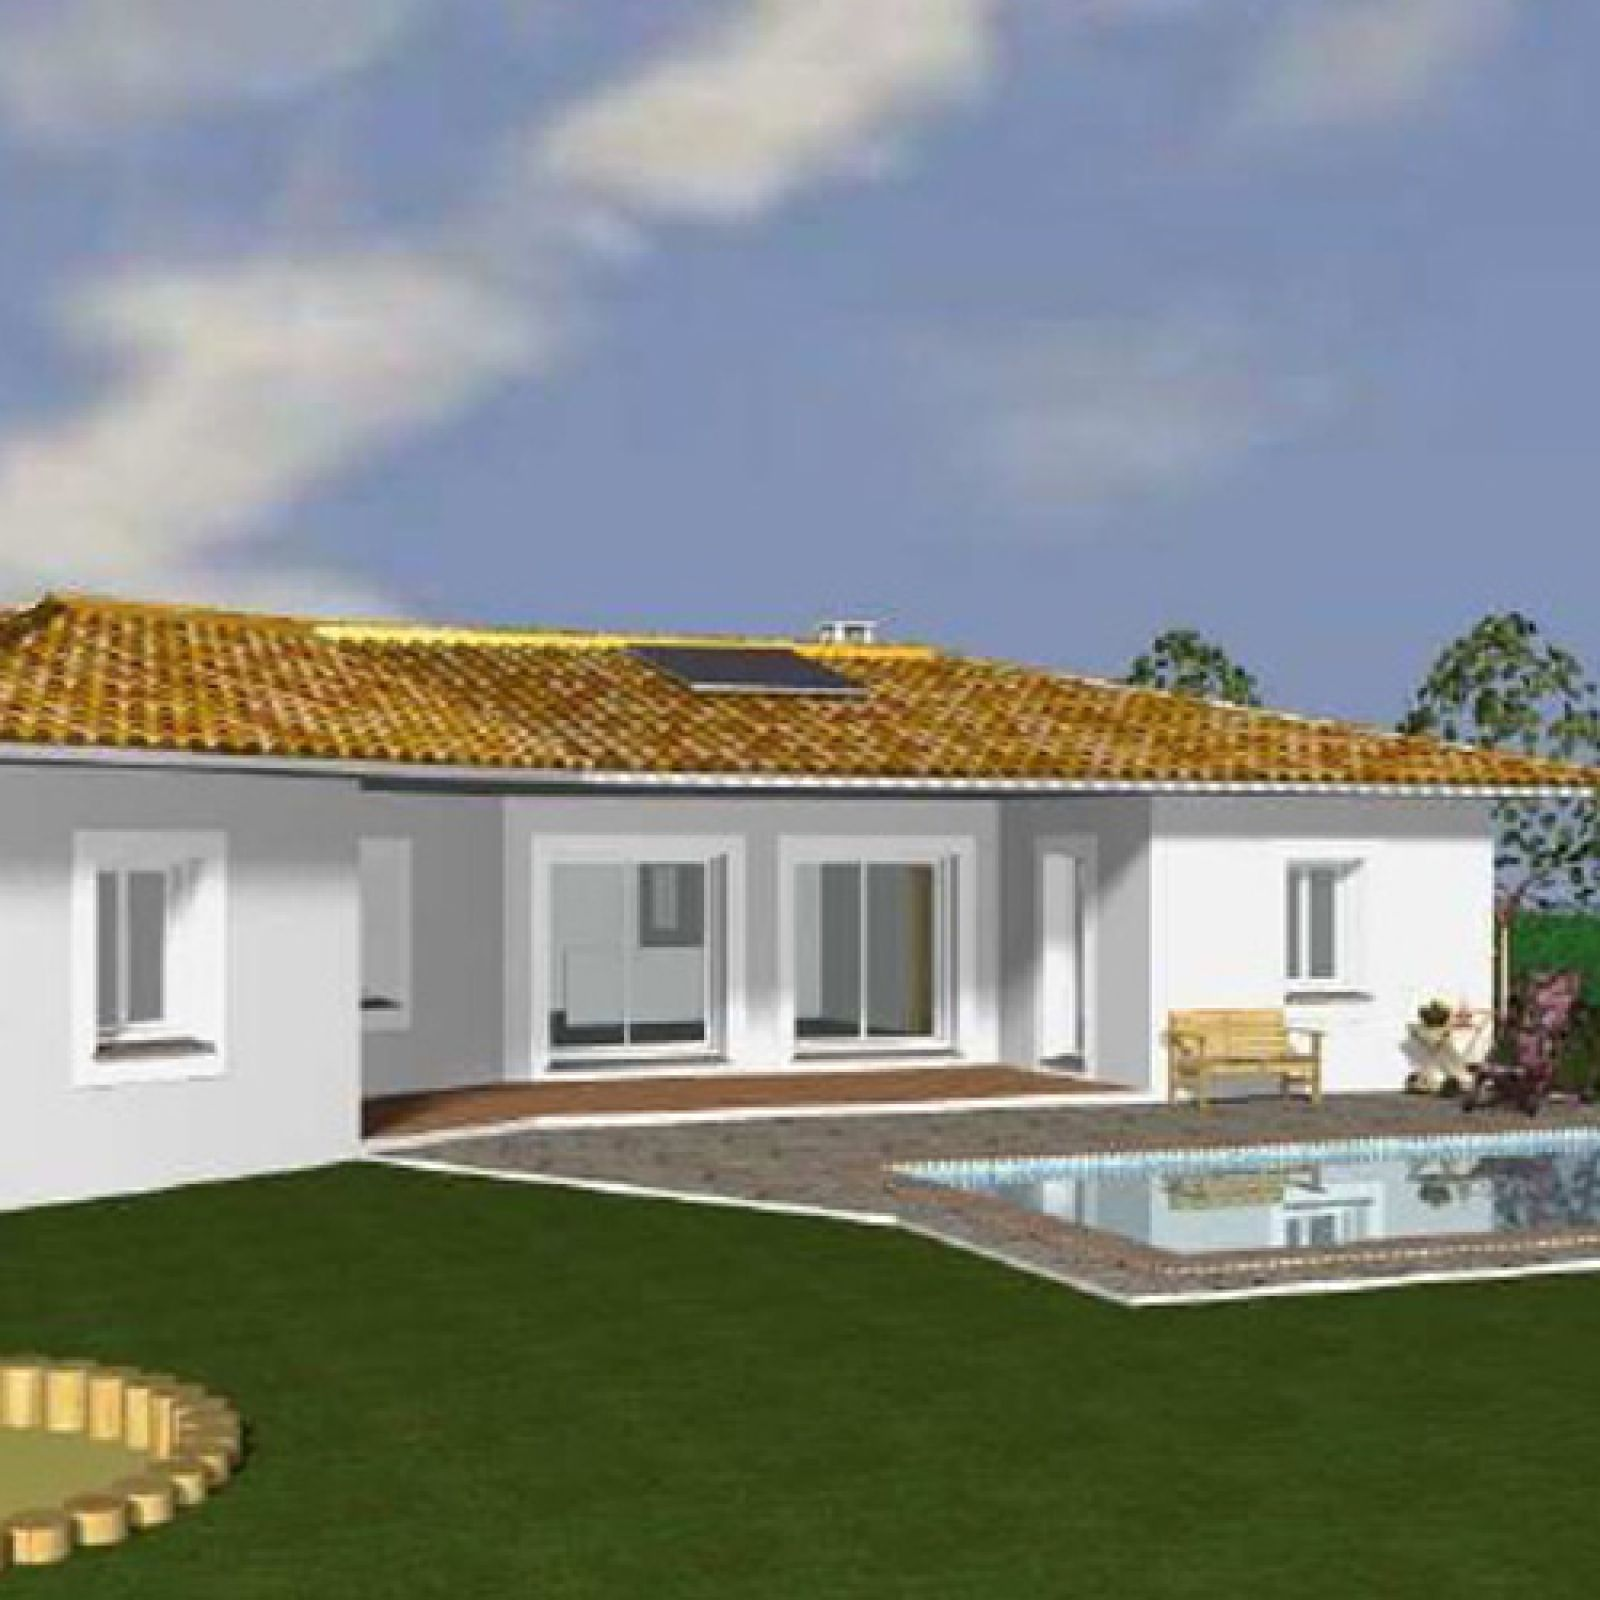 Villa stella for Construction maison quand commence t on a payer